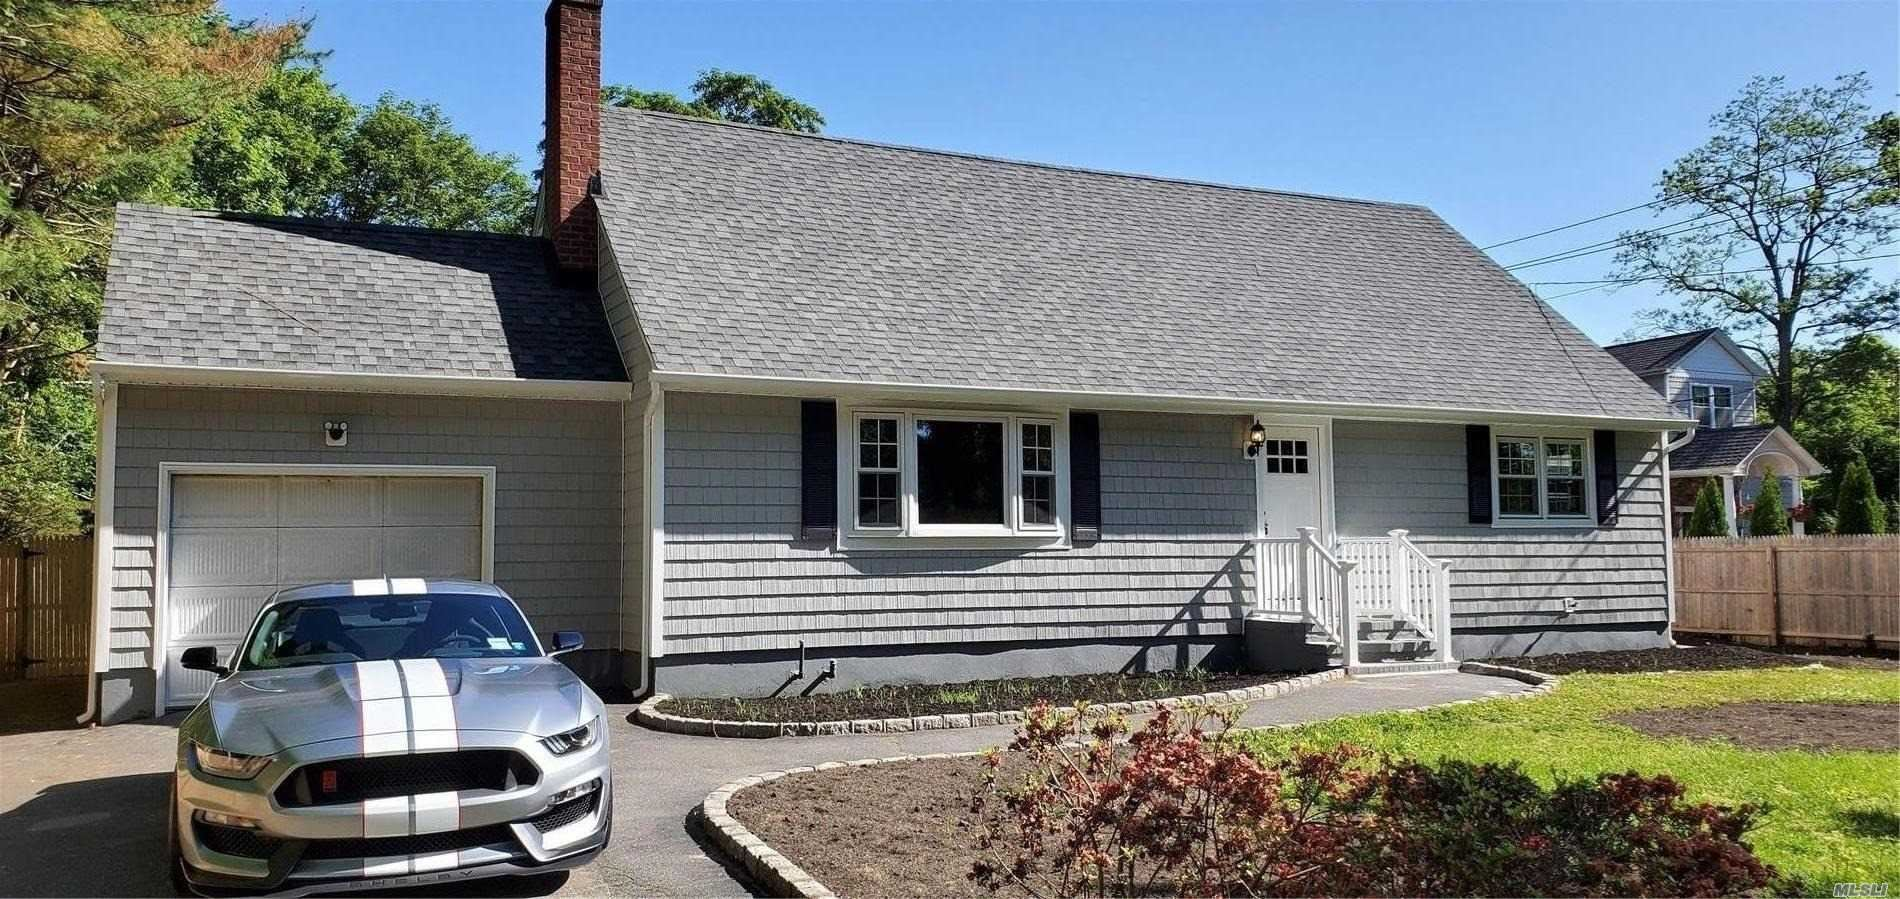 45 Old S. Country Road, Brookhaven, NY 11719 - MLS#: 3218522